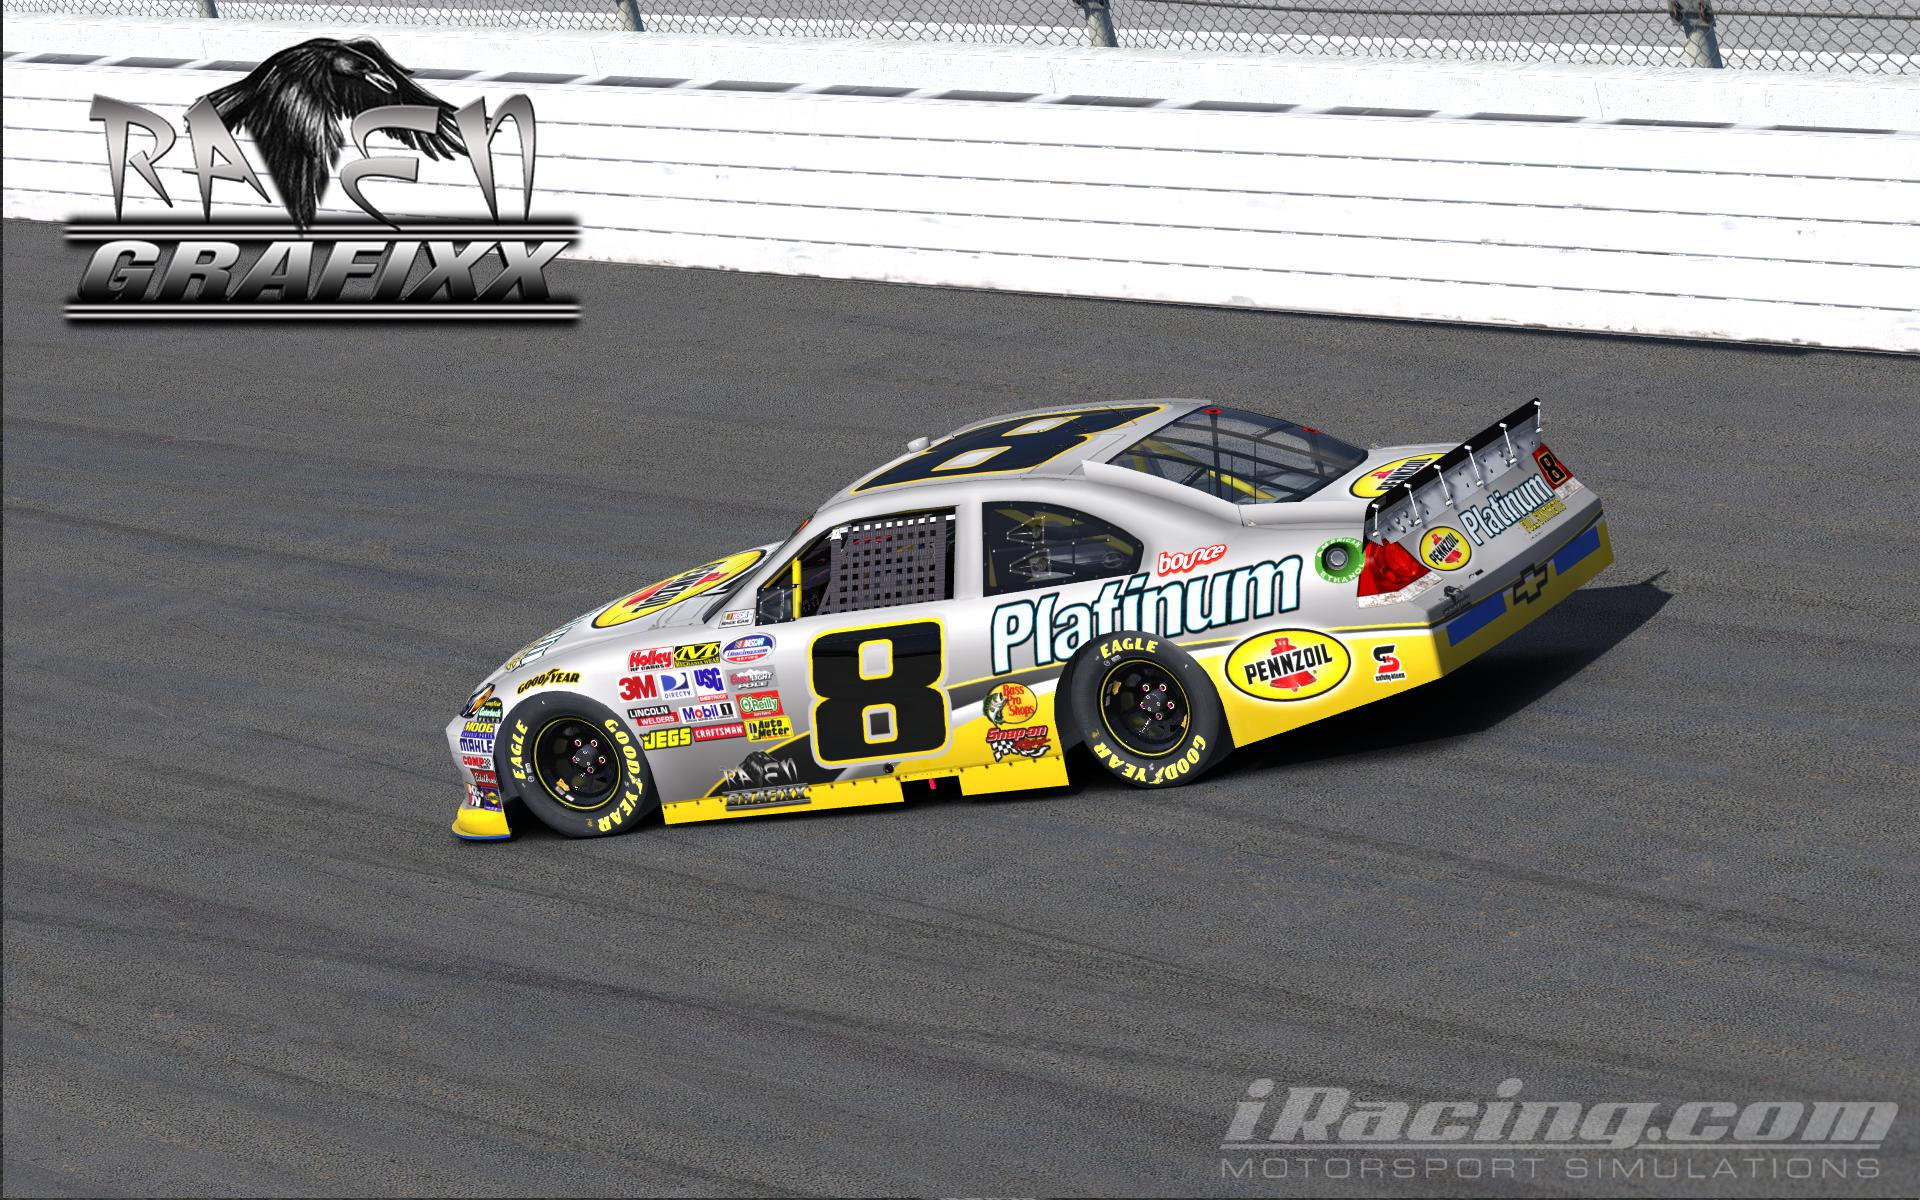 Preview of Pennzoil_Chevrolet Impala Class A_2048_2016.tga by Doyle Lowrance